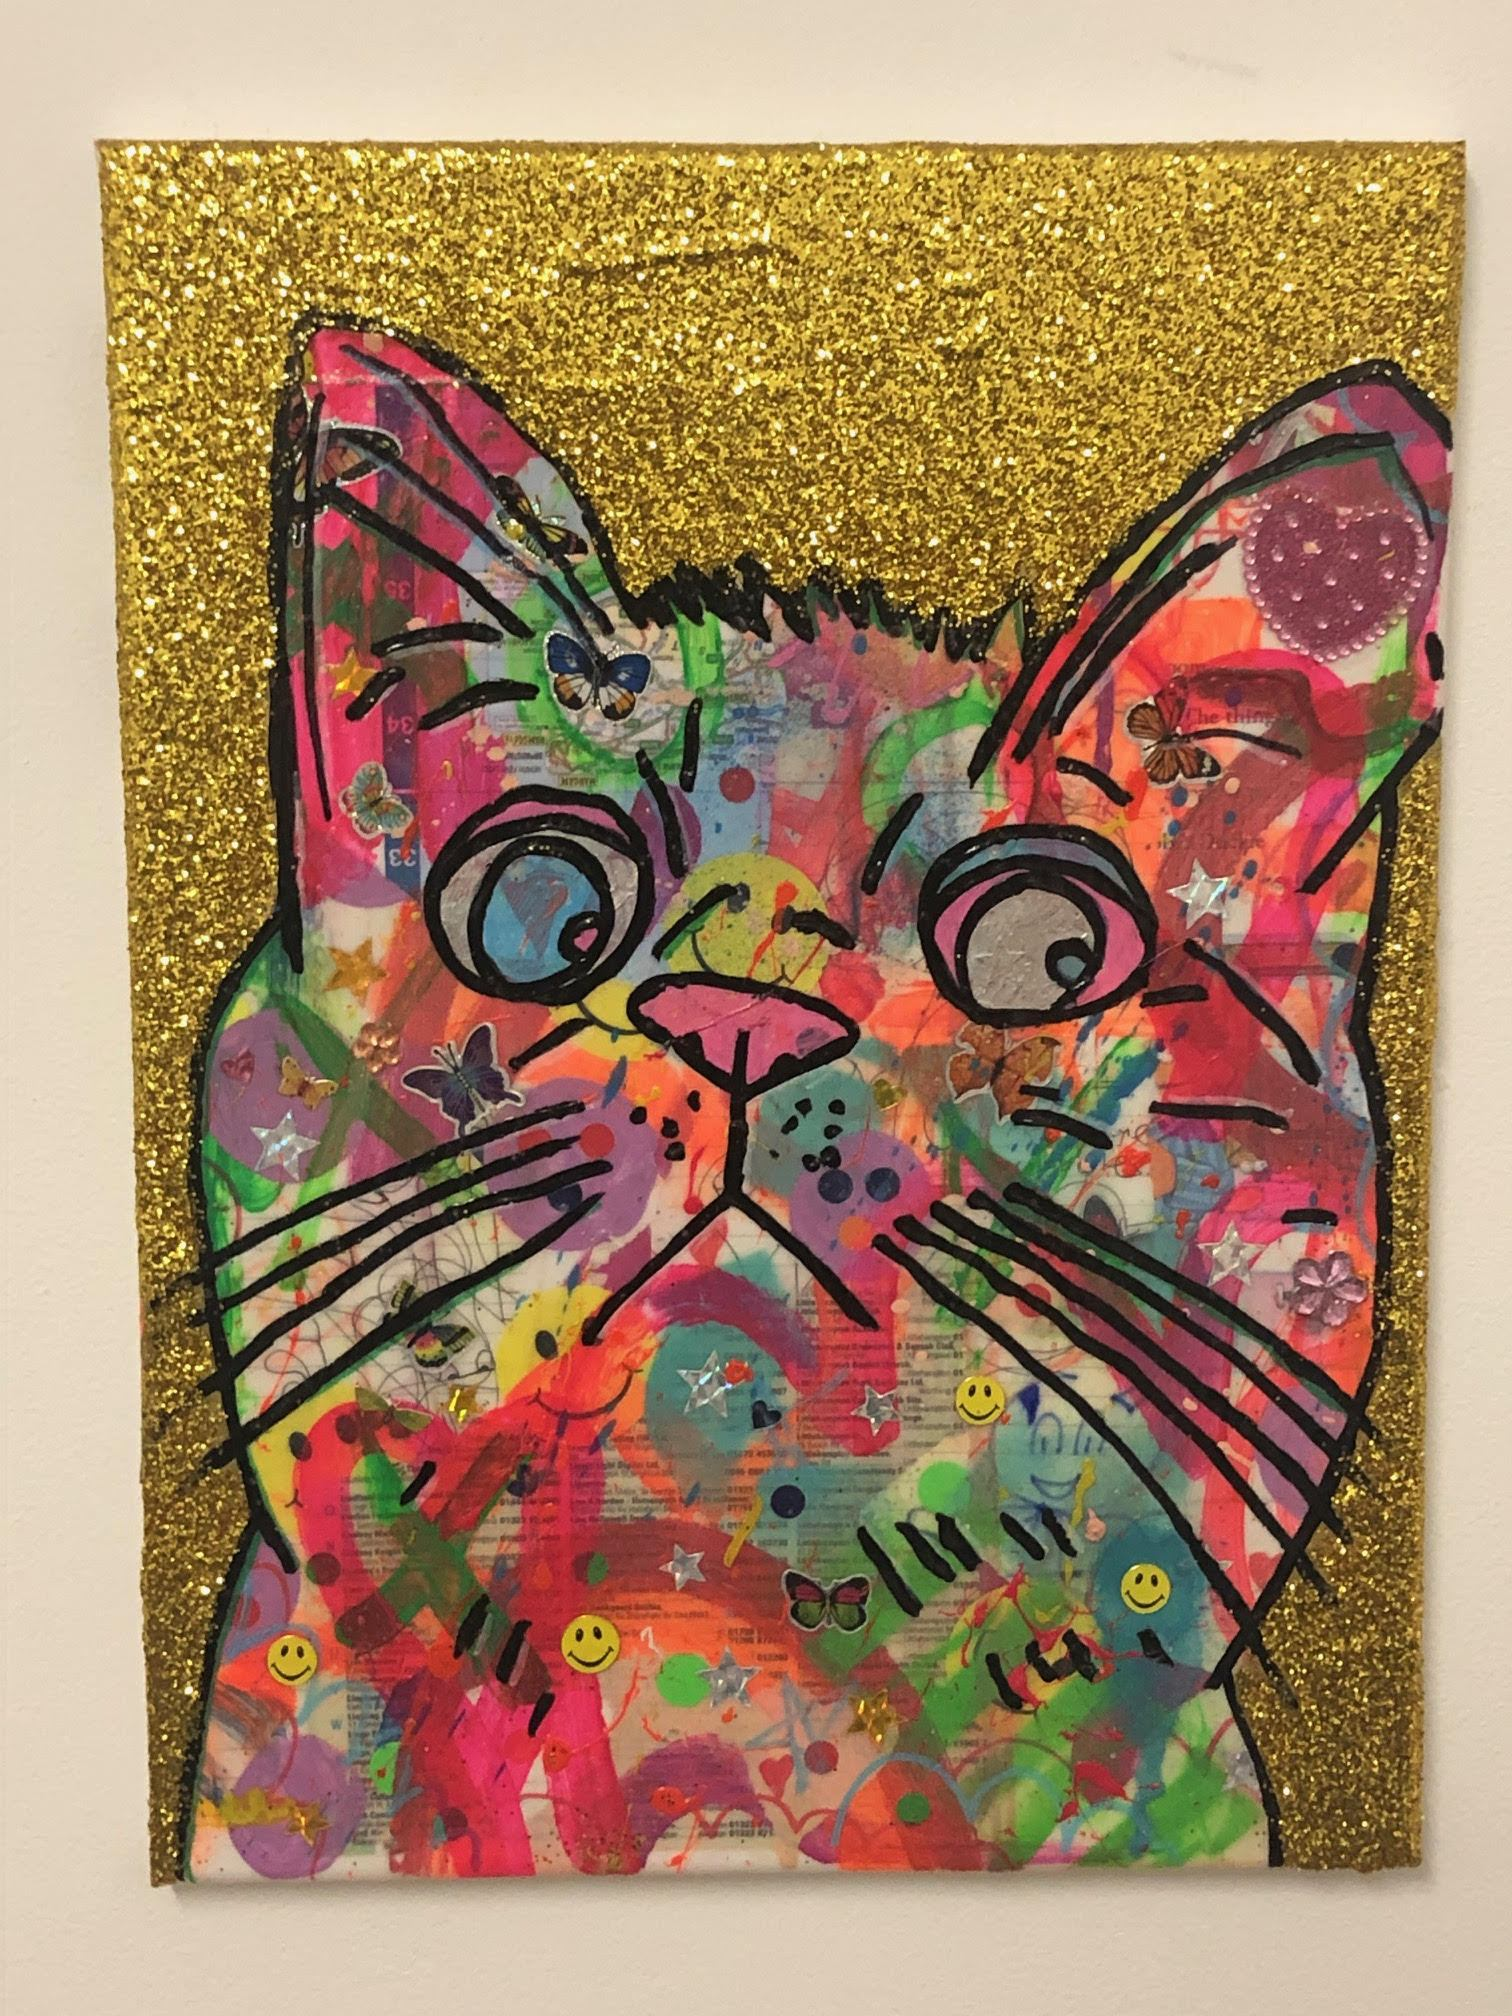 Cosmic Moggy by Barrie J Davies 2019, Mixed media on Canvas, Unframed. Urban Pop Art Street Artist based in Brighton England UK. Buy online for free delivery worldwide.